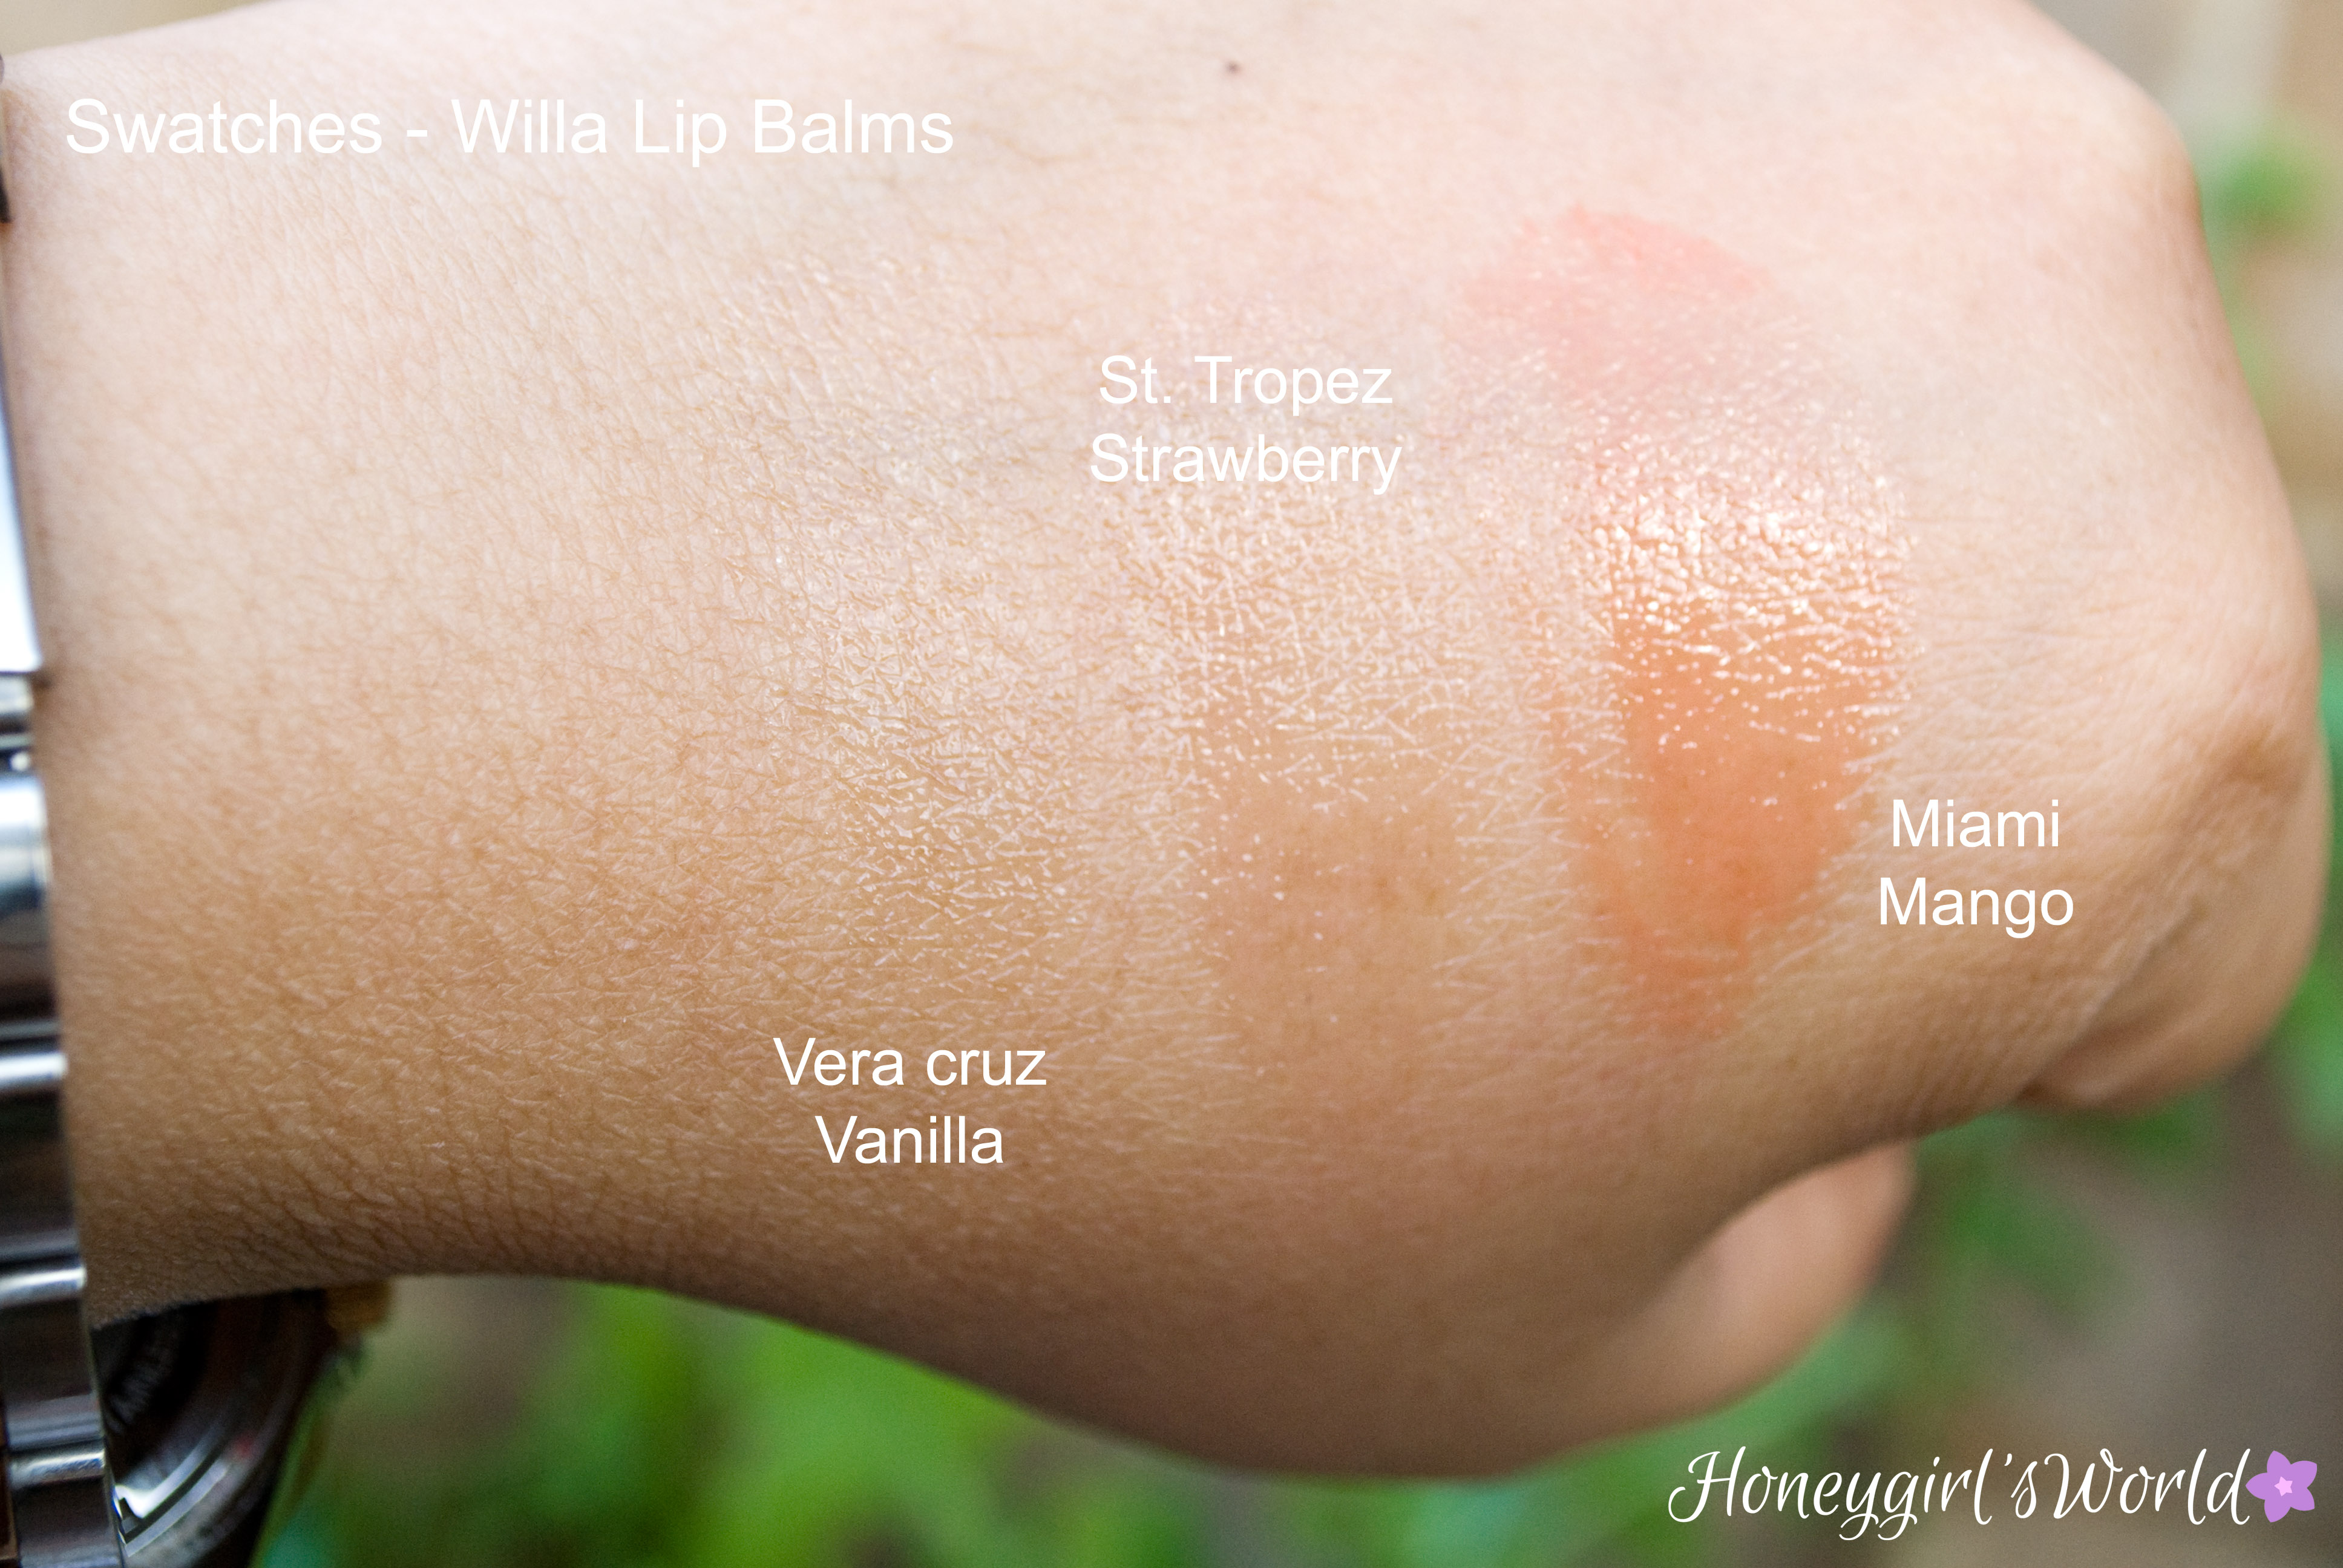 Willa Lip Balms Swatches